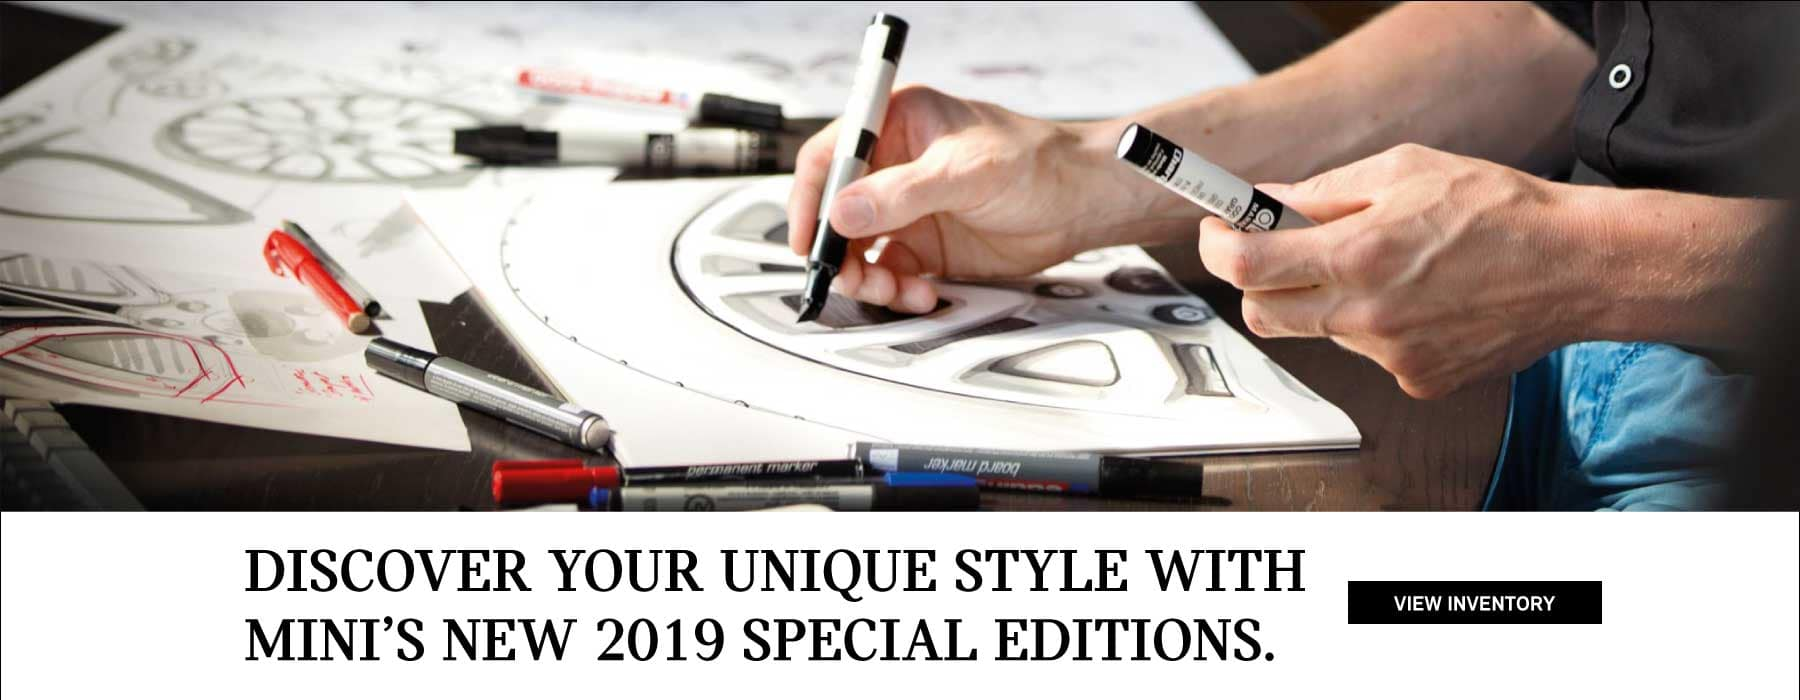 Discover your unique style with MINIs special editions.